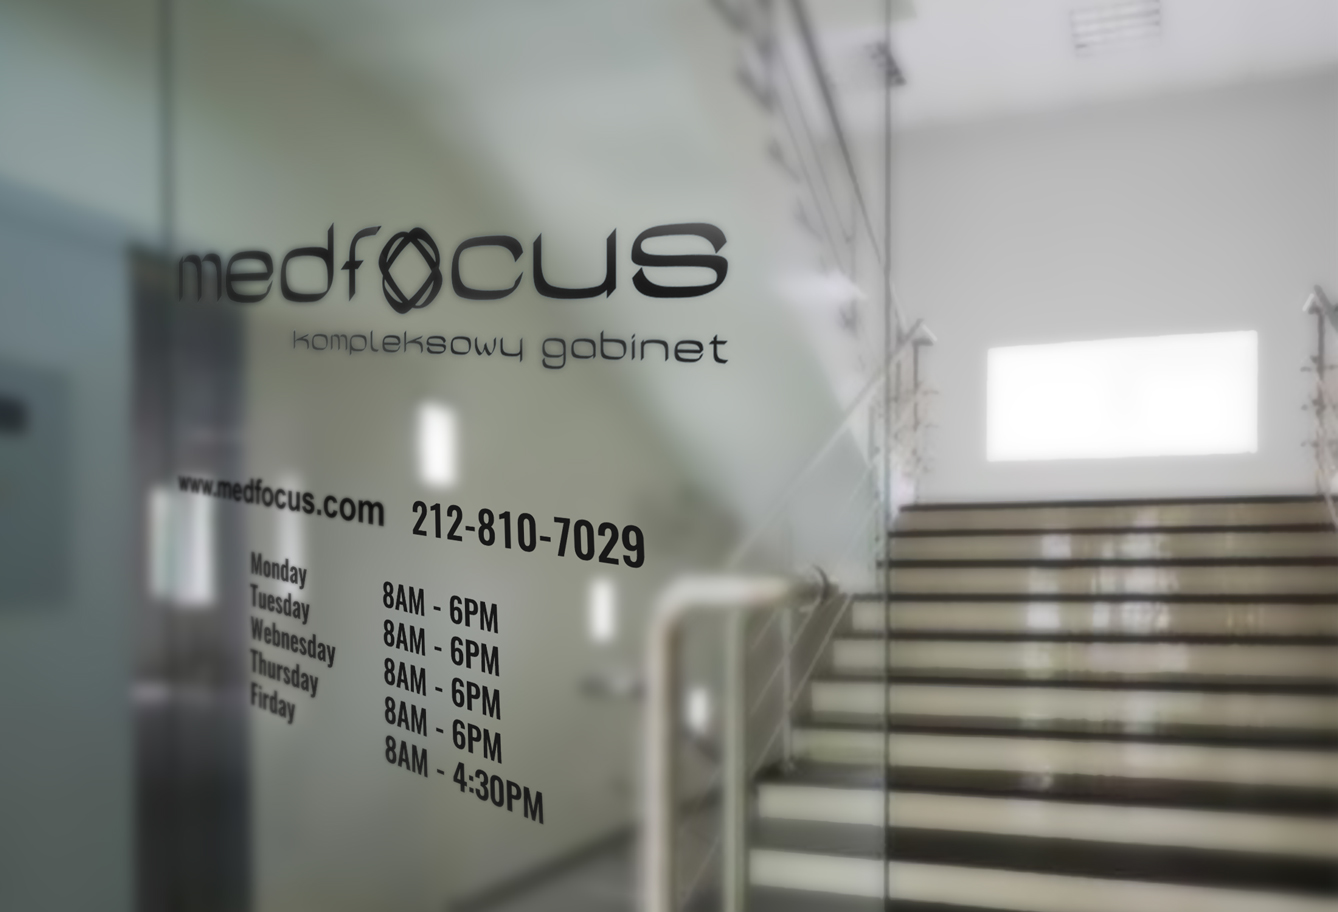 modfocus-door